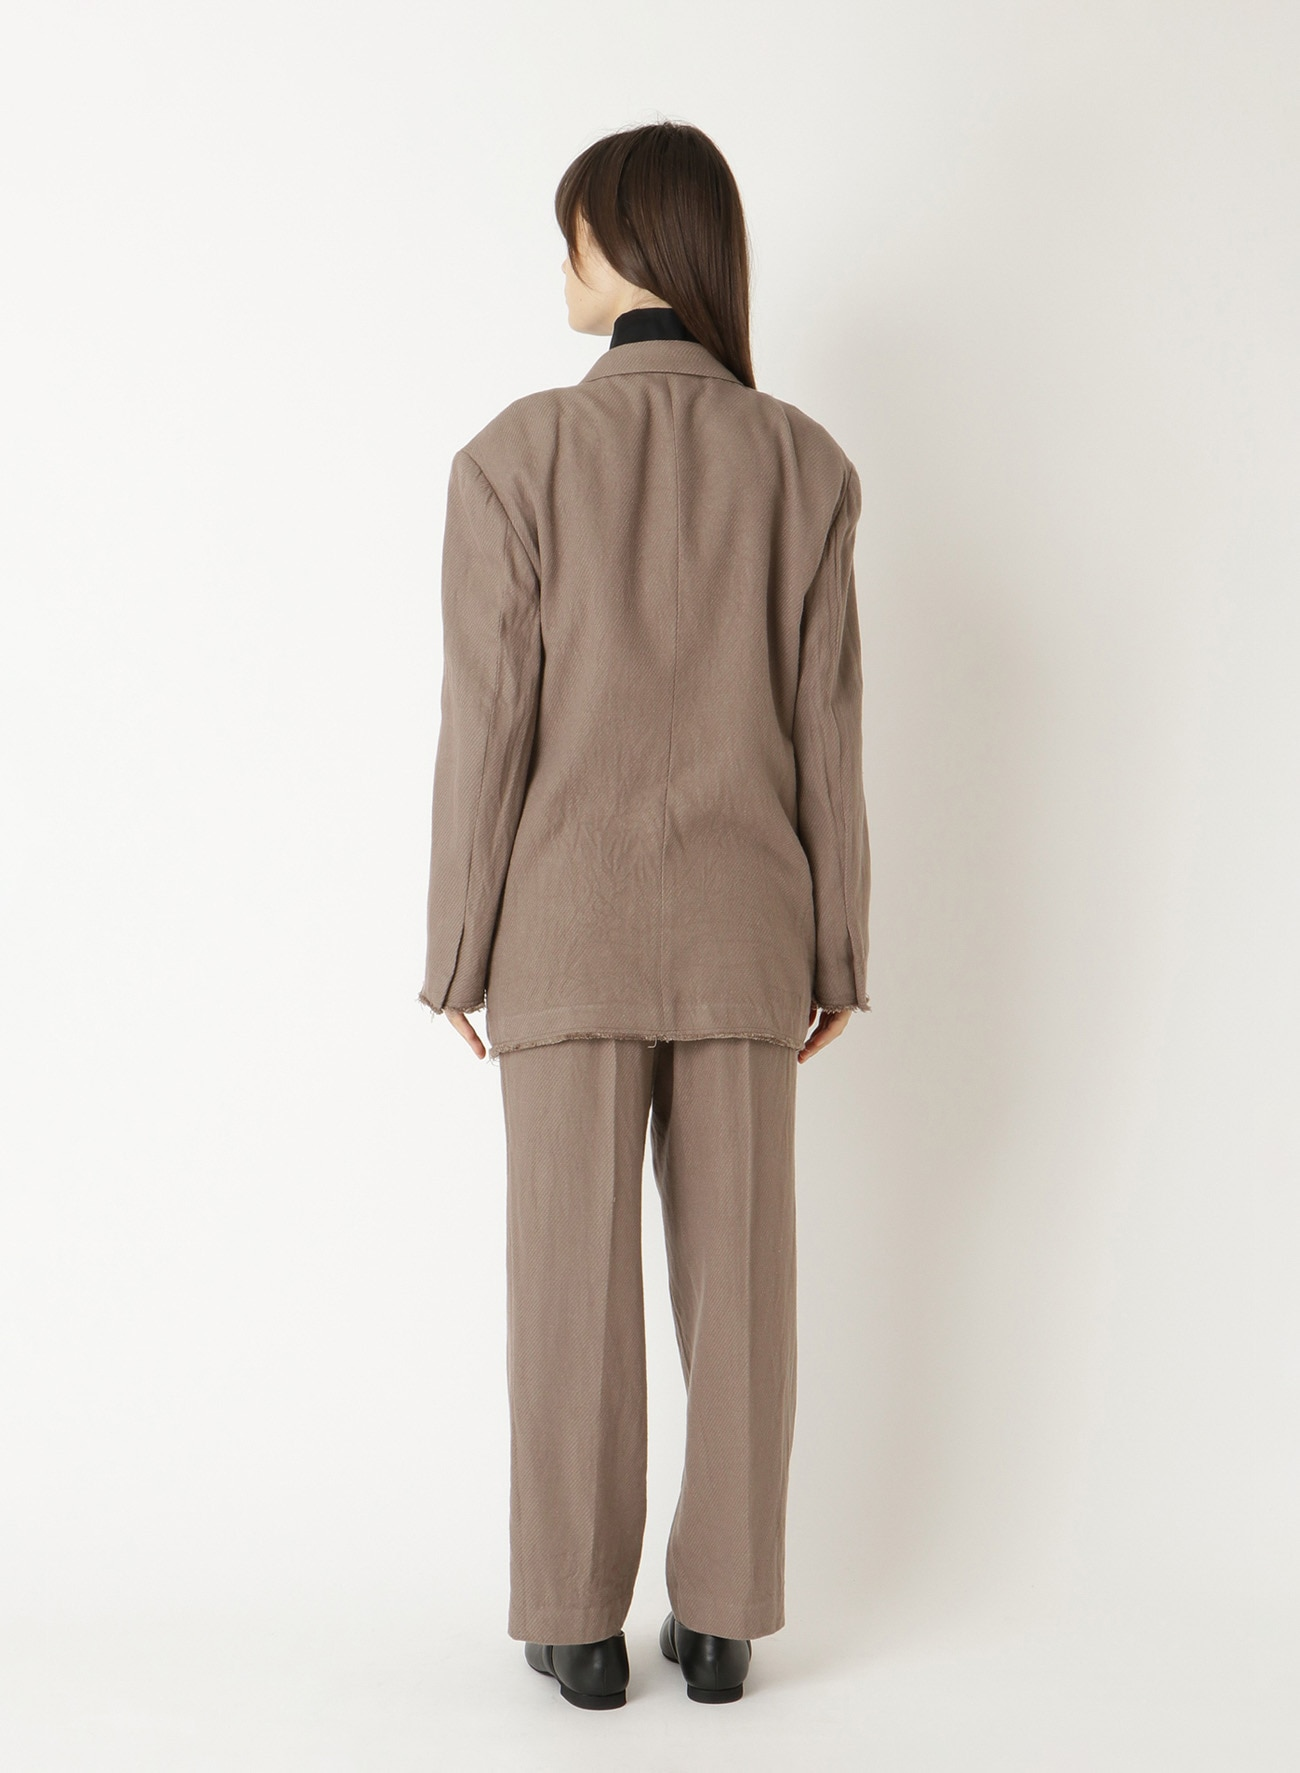 Li/C/Ry CARUSE TAILORED JACKET